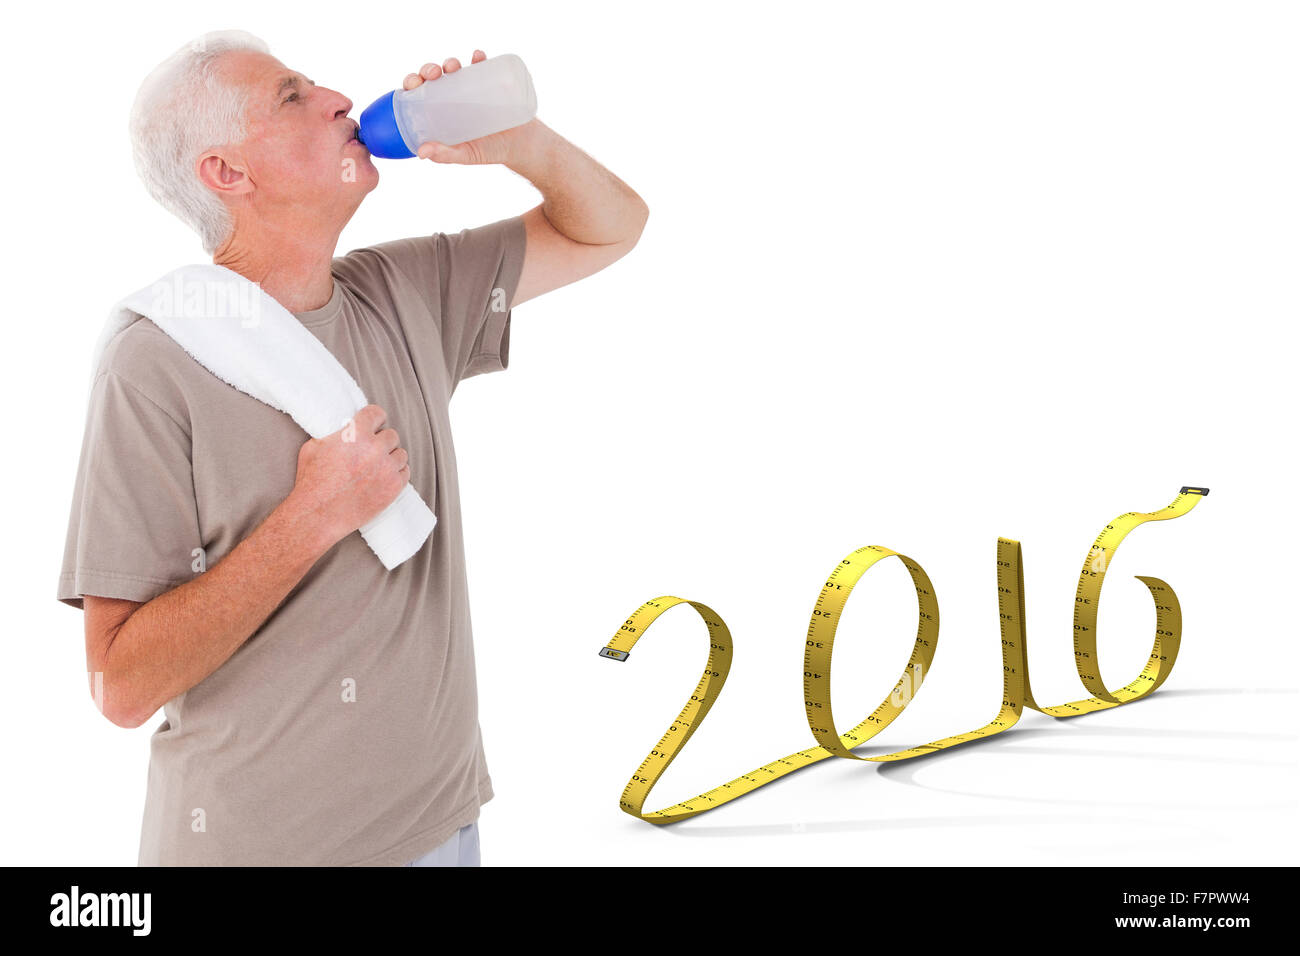 Composite image of senior man drinking from water bottle - Stock Image